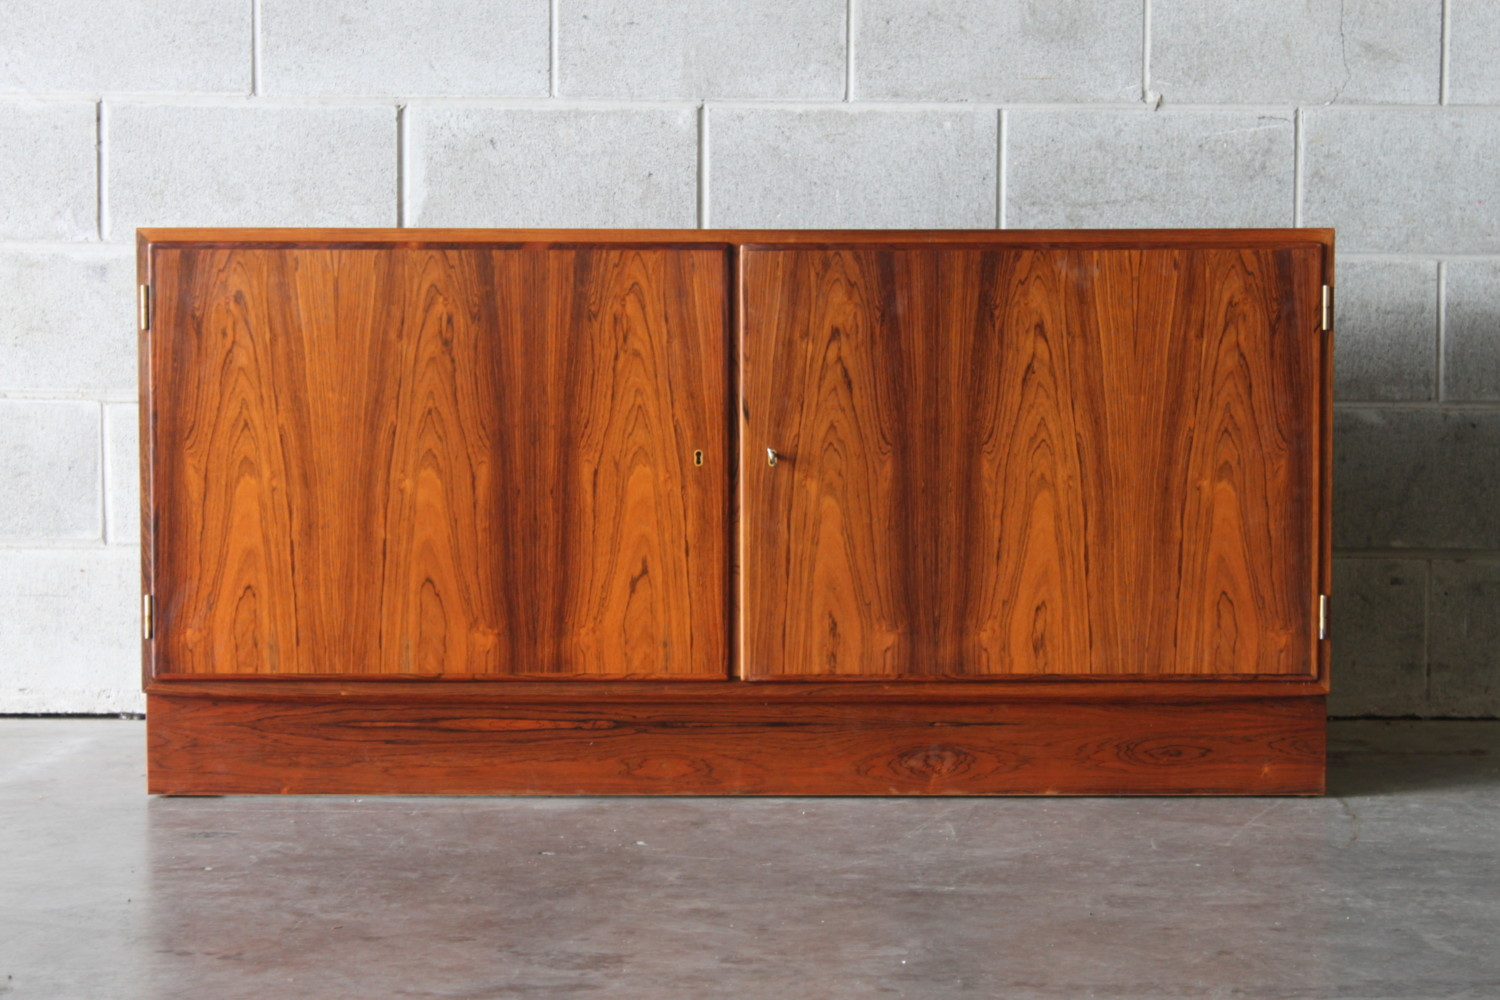 Rosewood Sideboard by Poul Hundevad Sold